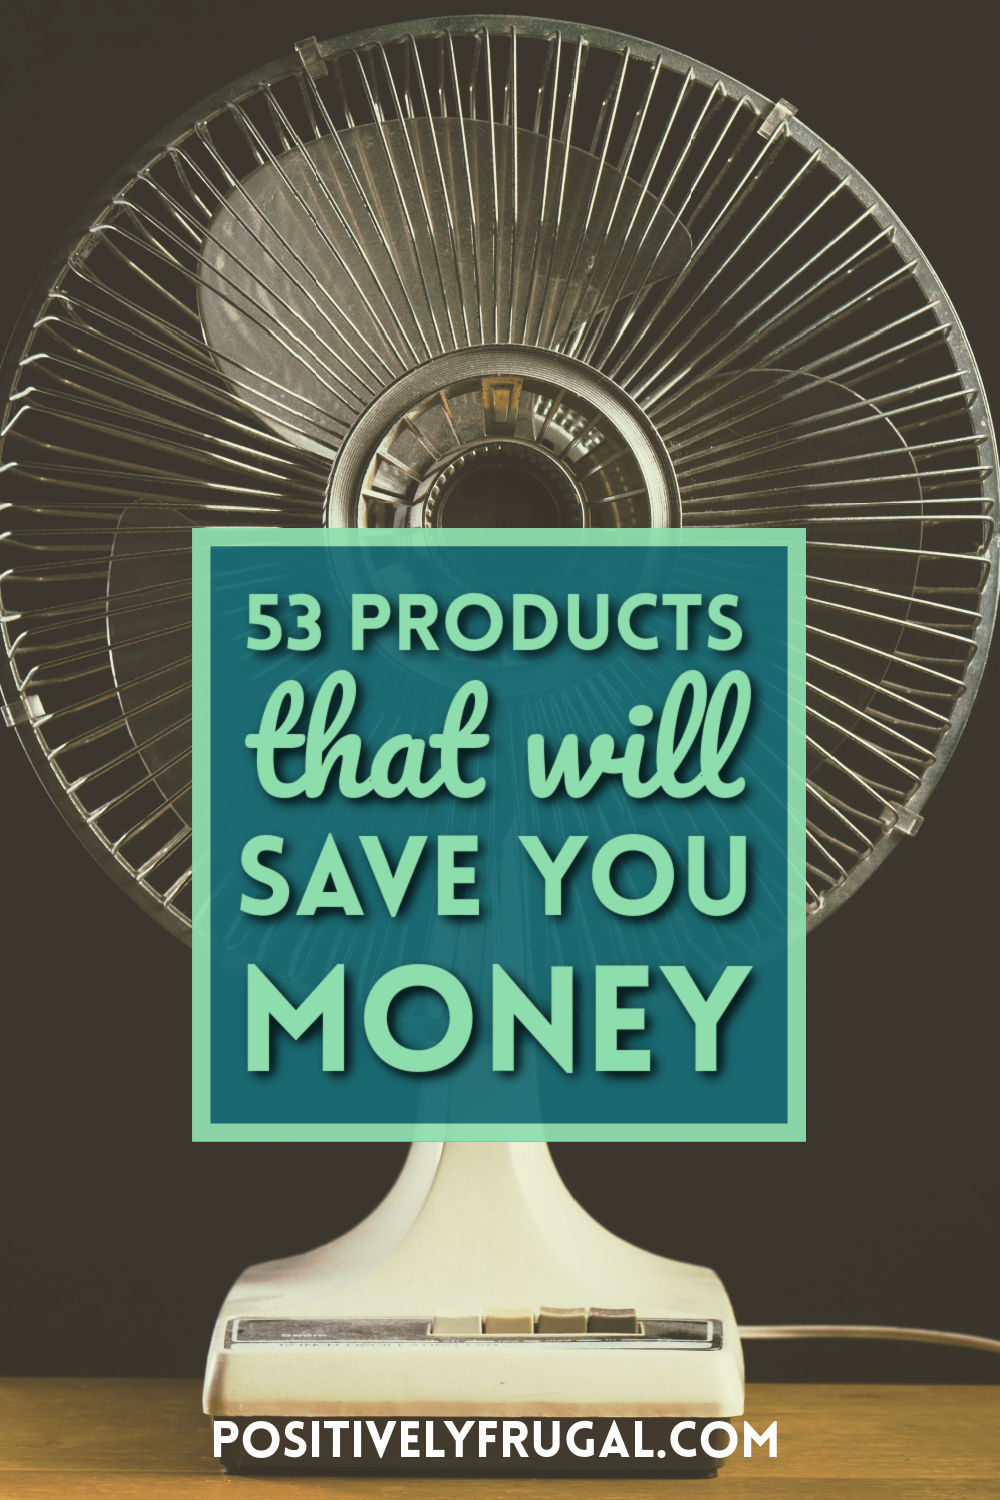 53 Products That Will Save You Money by PositivelyFrugal.com